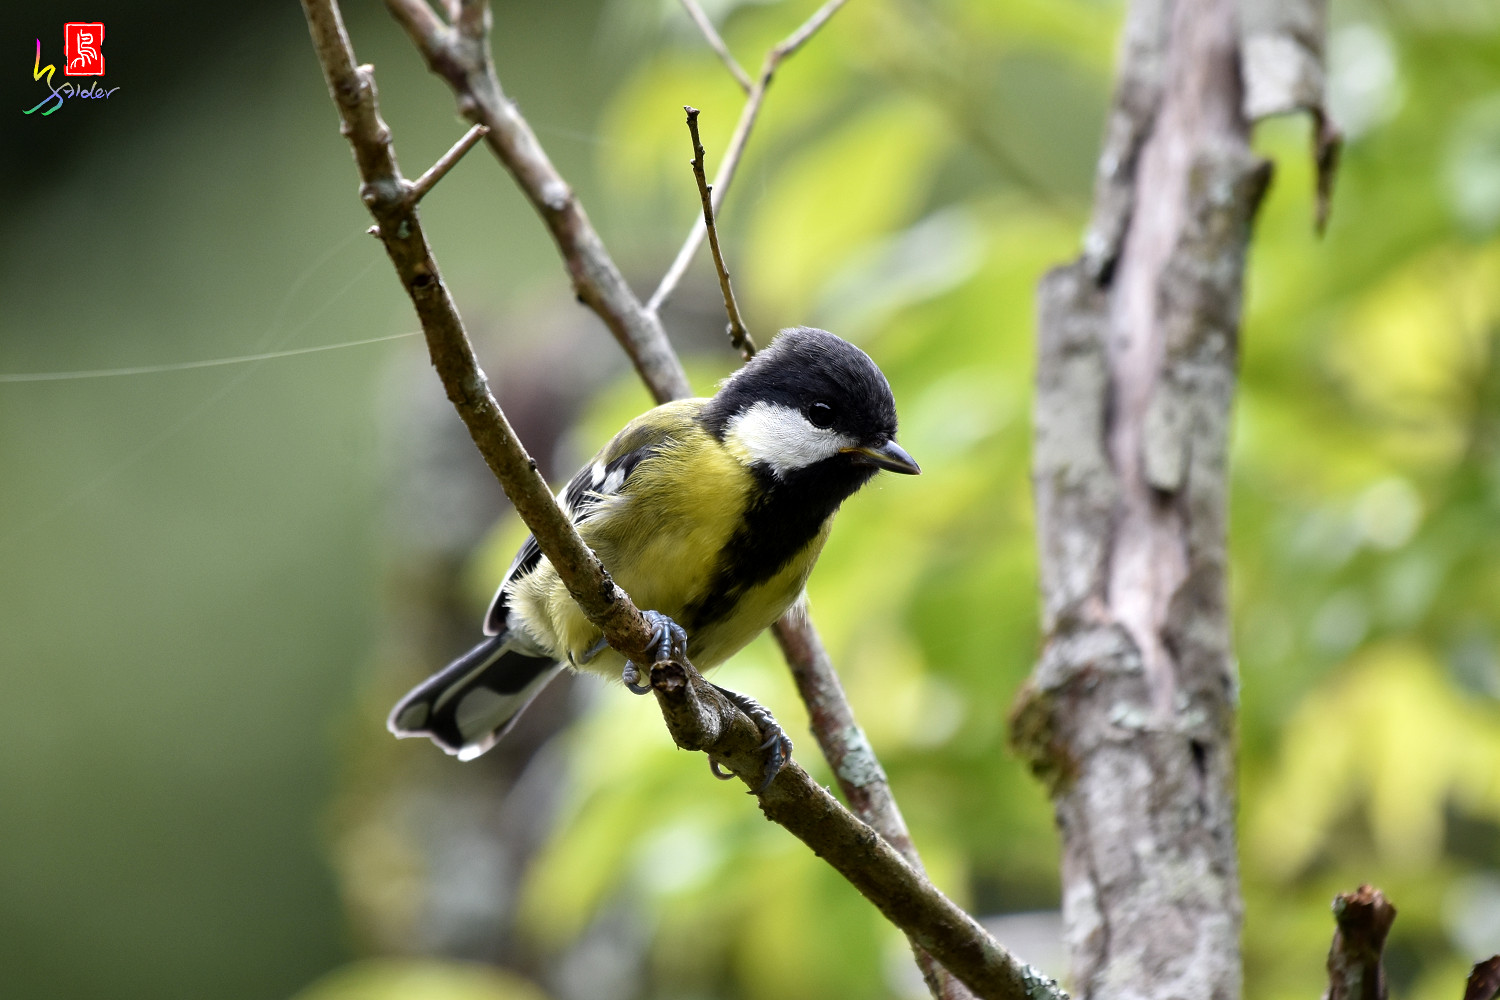 Green-backed_Tit_8844